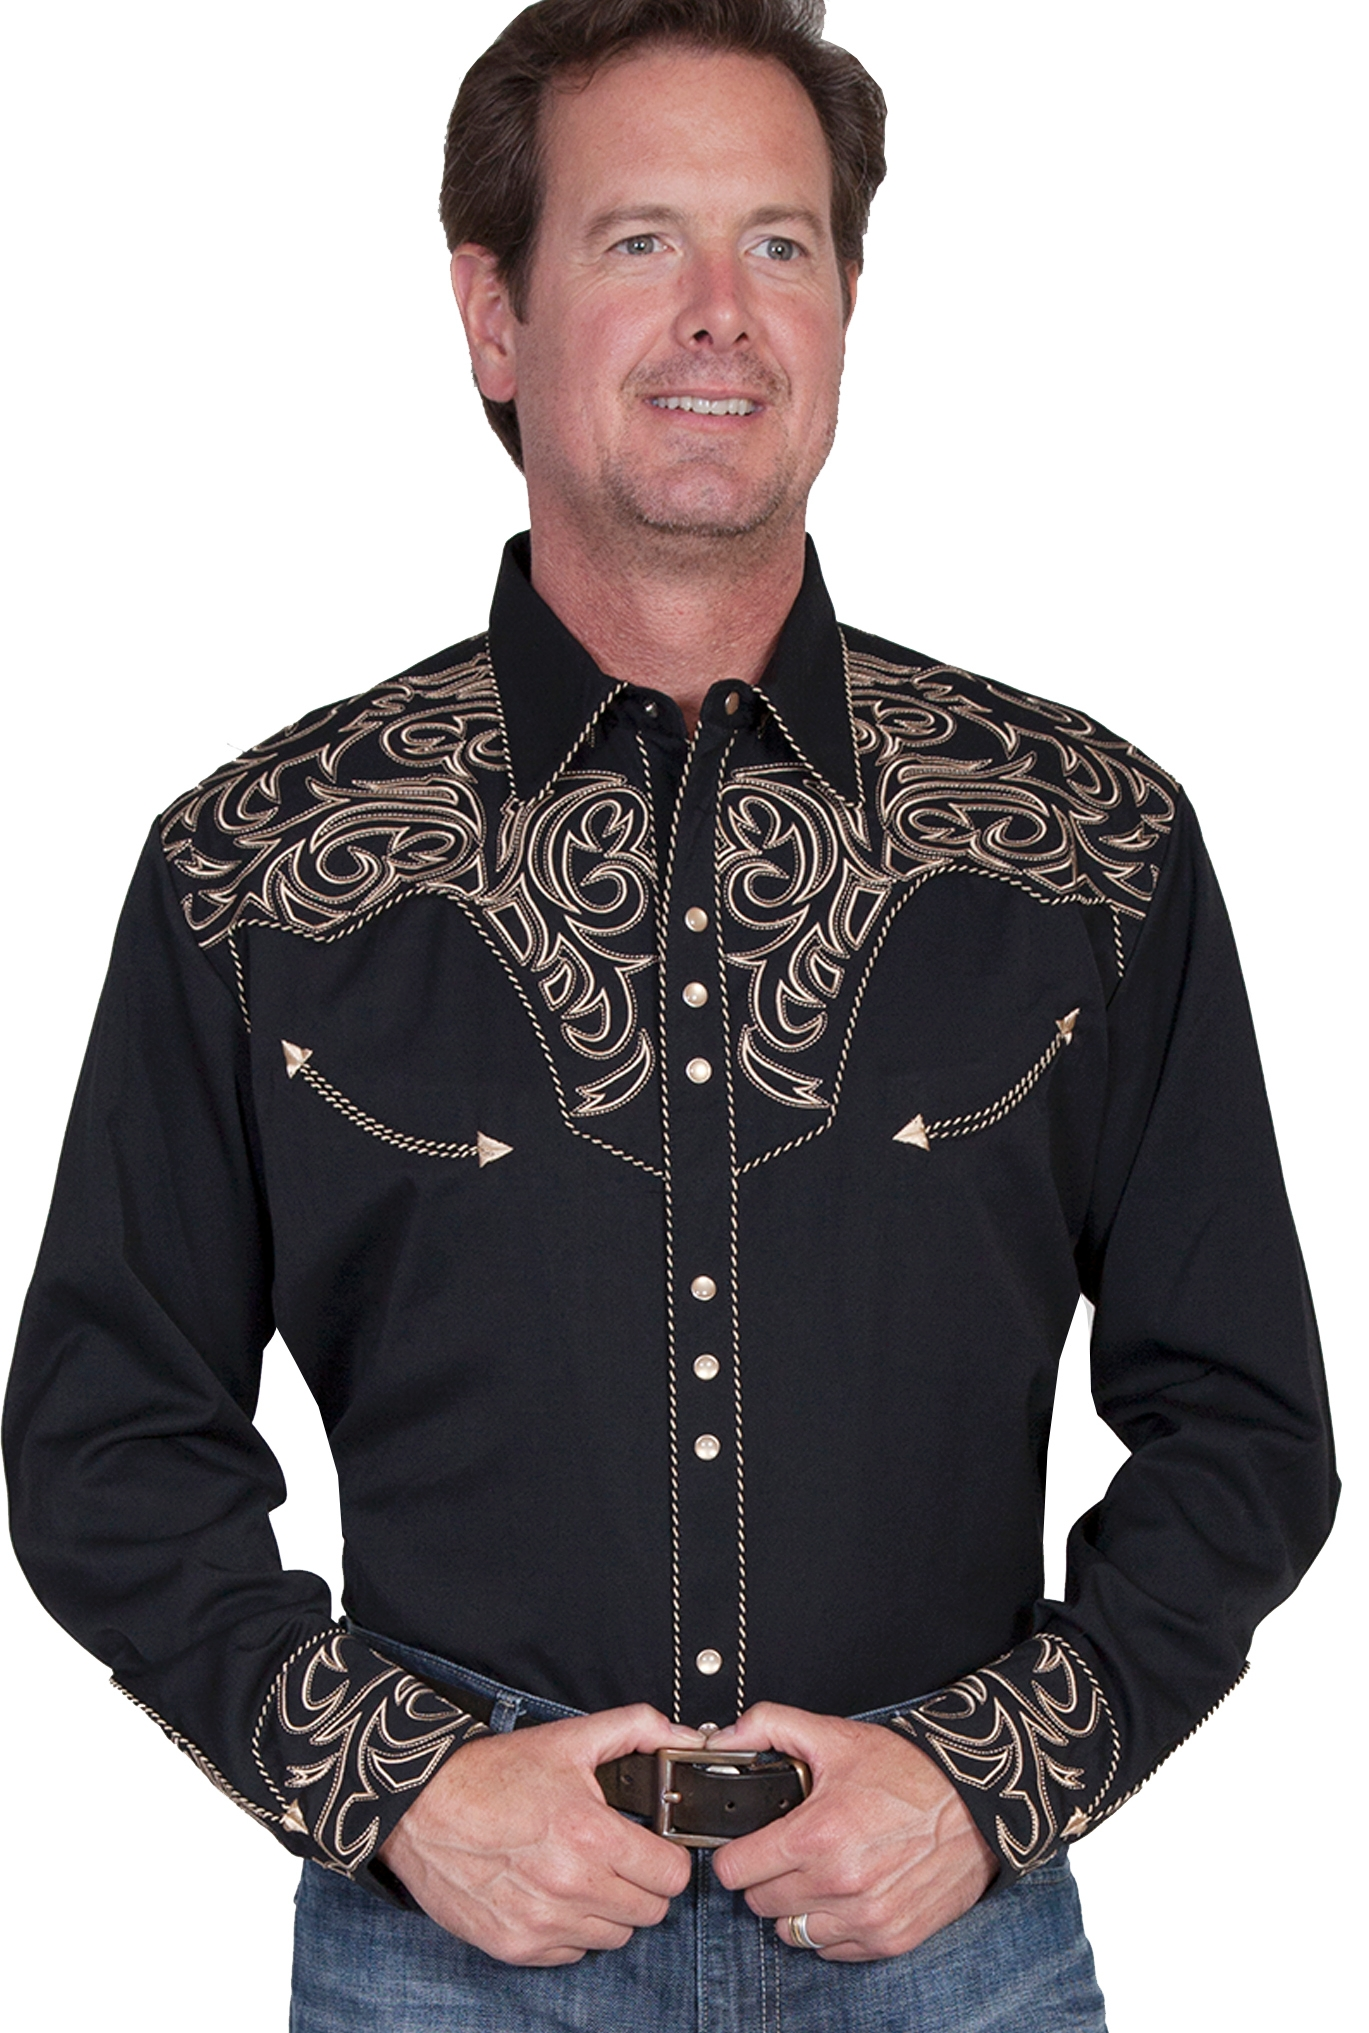 Mens Western Shirts. Western shirts for men are for all you rugged Americans! Our Cowgirl Stylists will be proud to help you rustle up some authentic Western style. You are not going to find a better range in cowboy shirts, from classic denim to modern plaids – anywhere. We know we've looked!